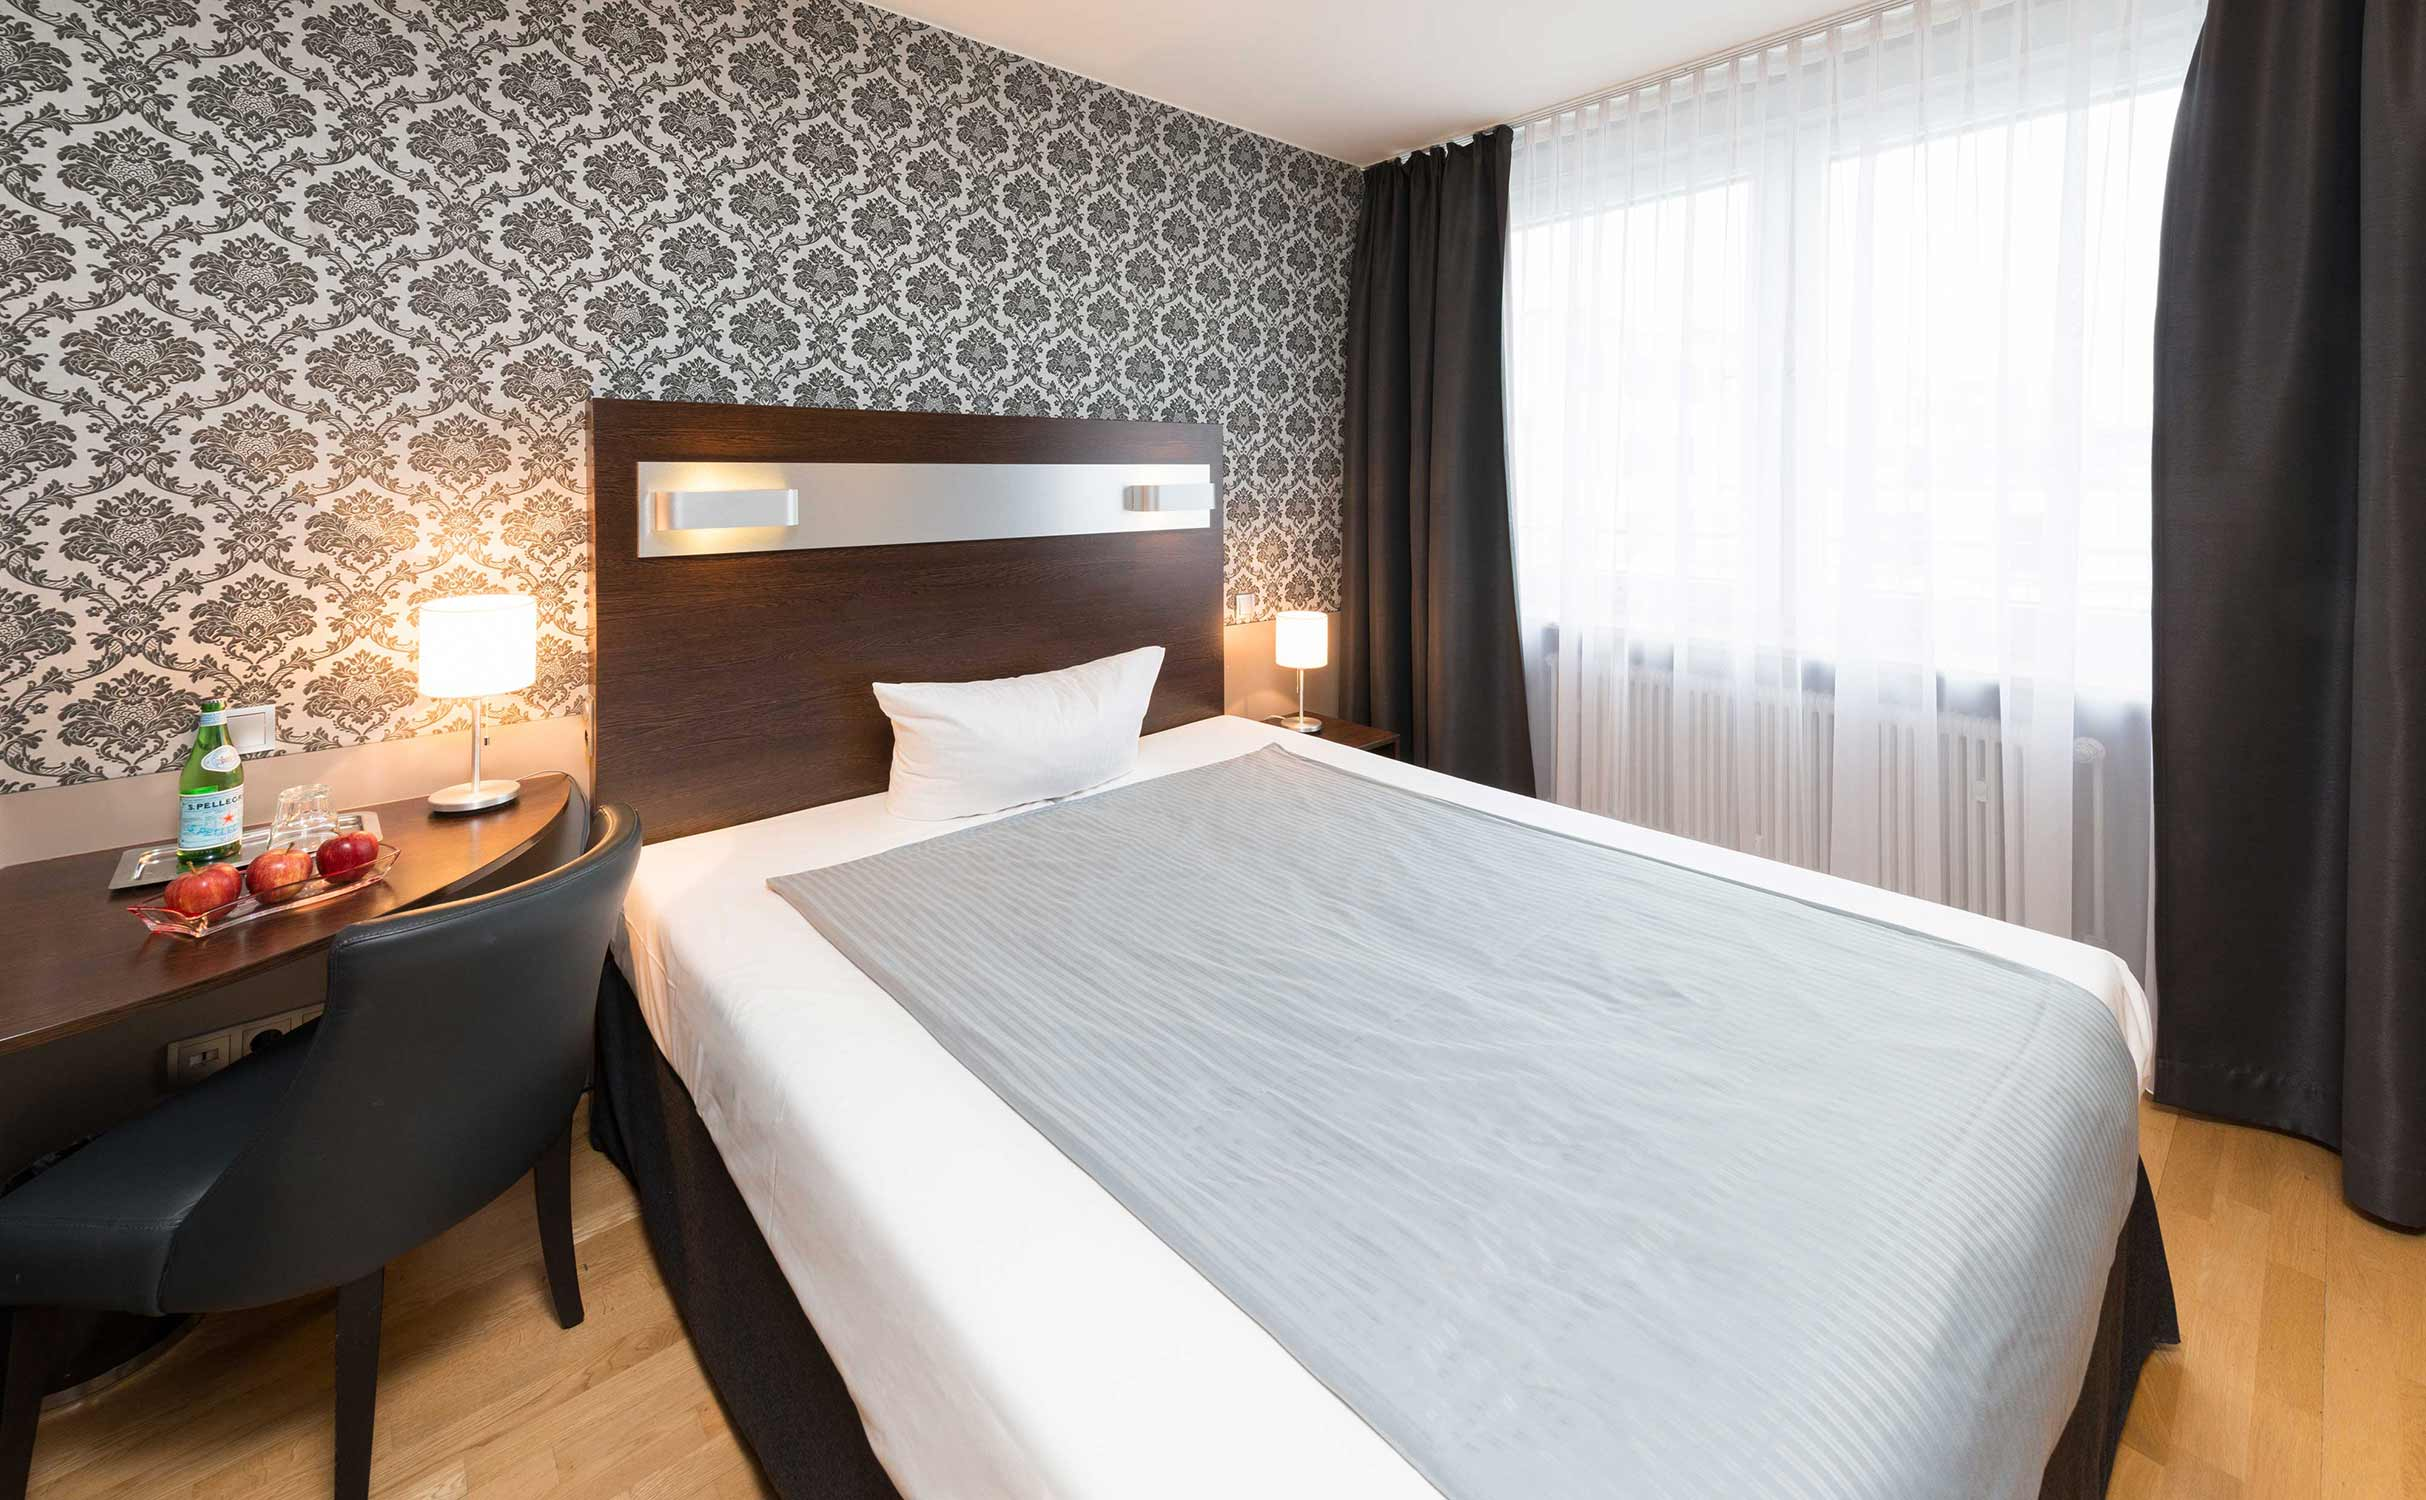 Munich Inn Design Hotel camera singola